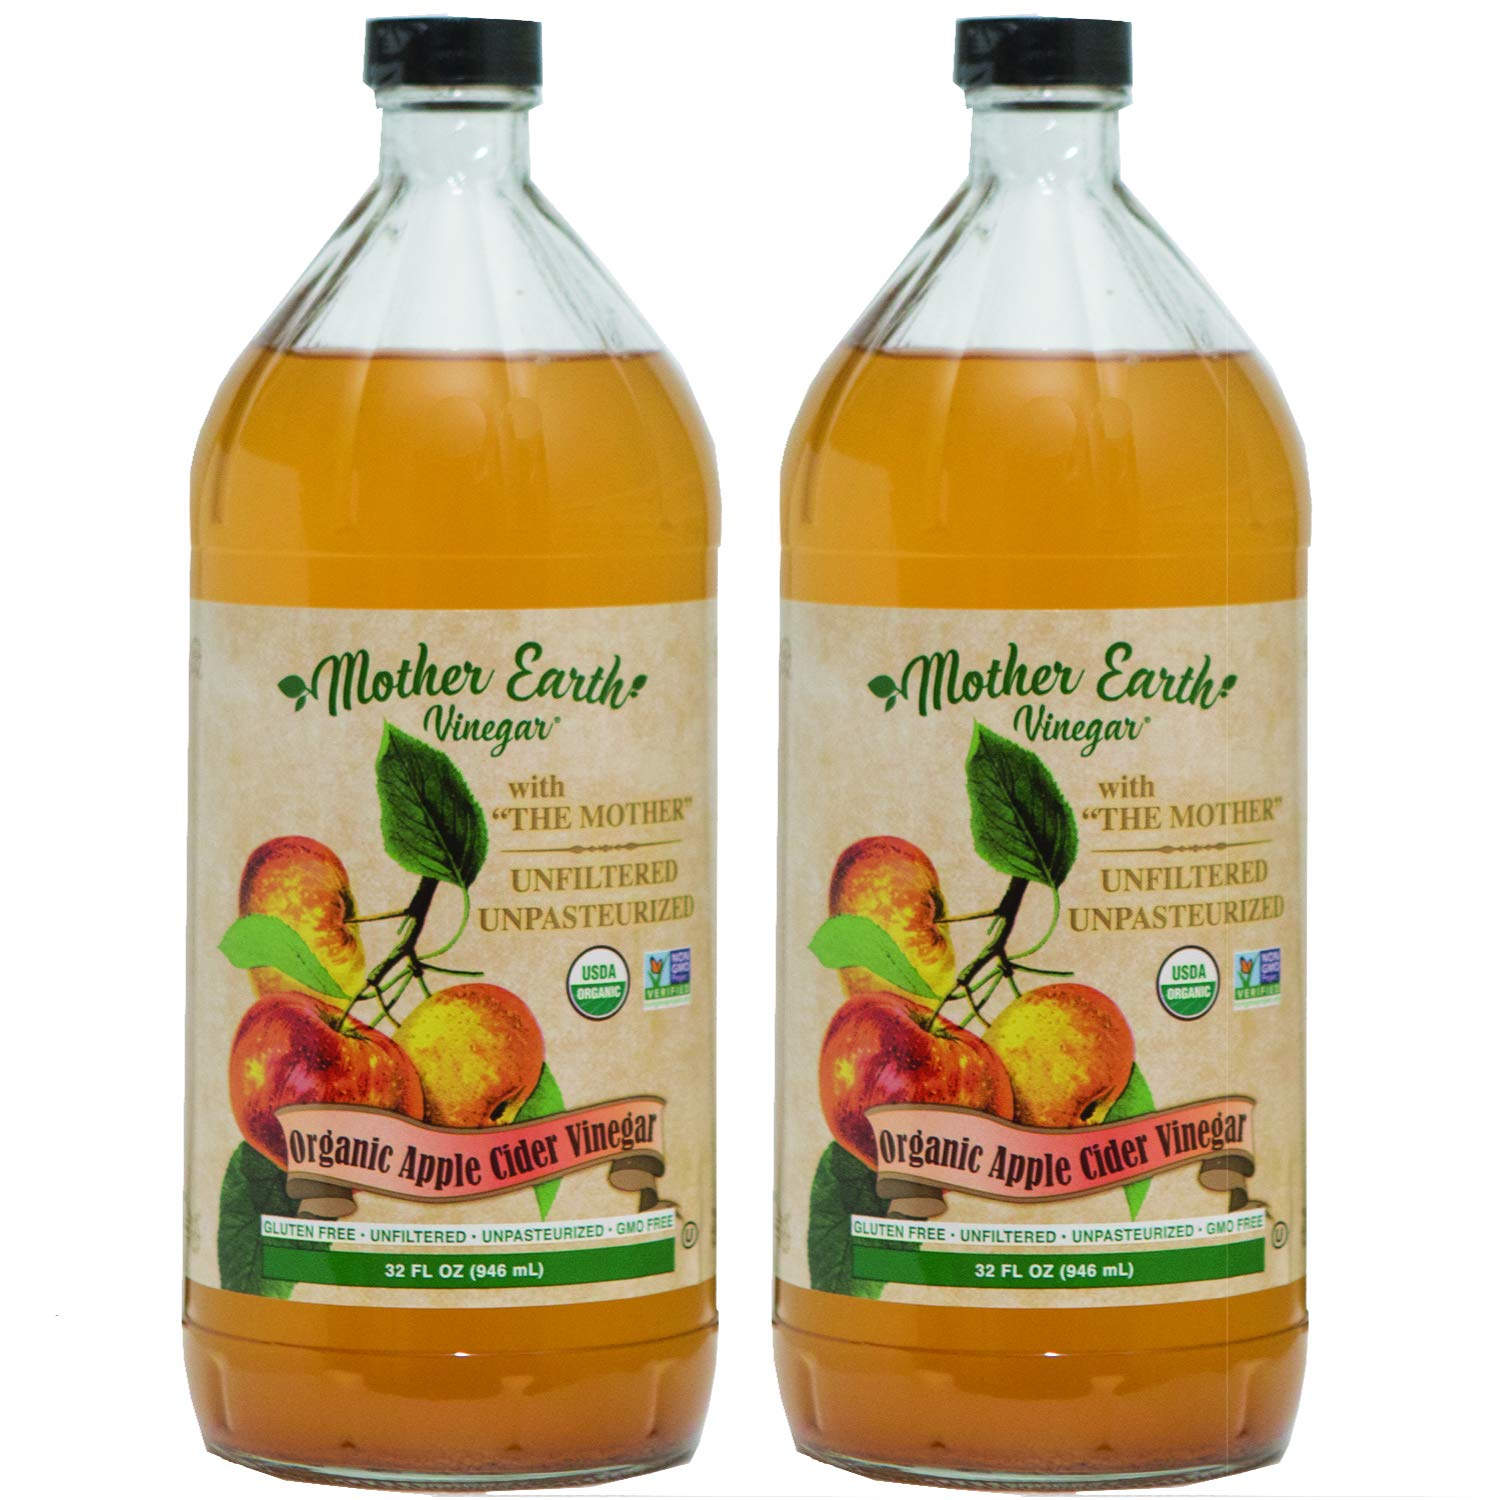 Mother Earth, Organic Apple Cider Vinegar with The Mother, Fermented with Fresh Pressed Organic Apples, OACV, ACV, Raw, Unpasteurized, Unfiltered (2/32oz Glass Bottles)